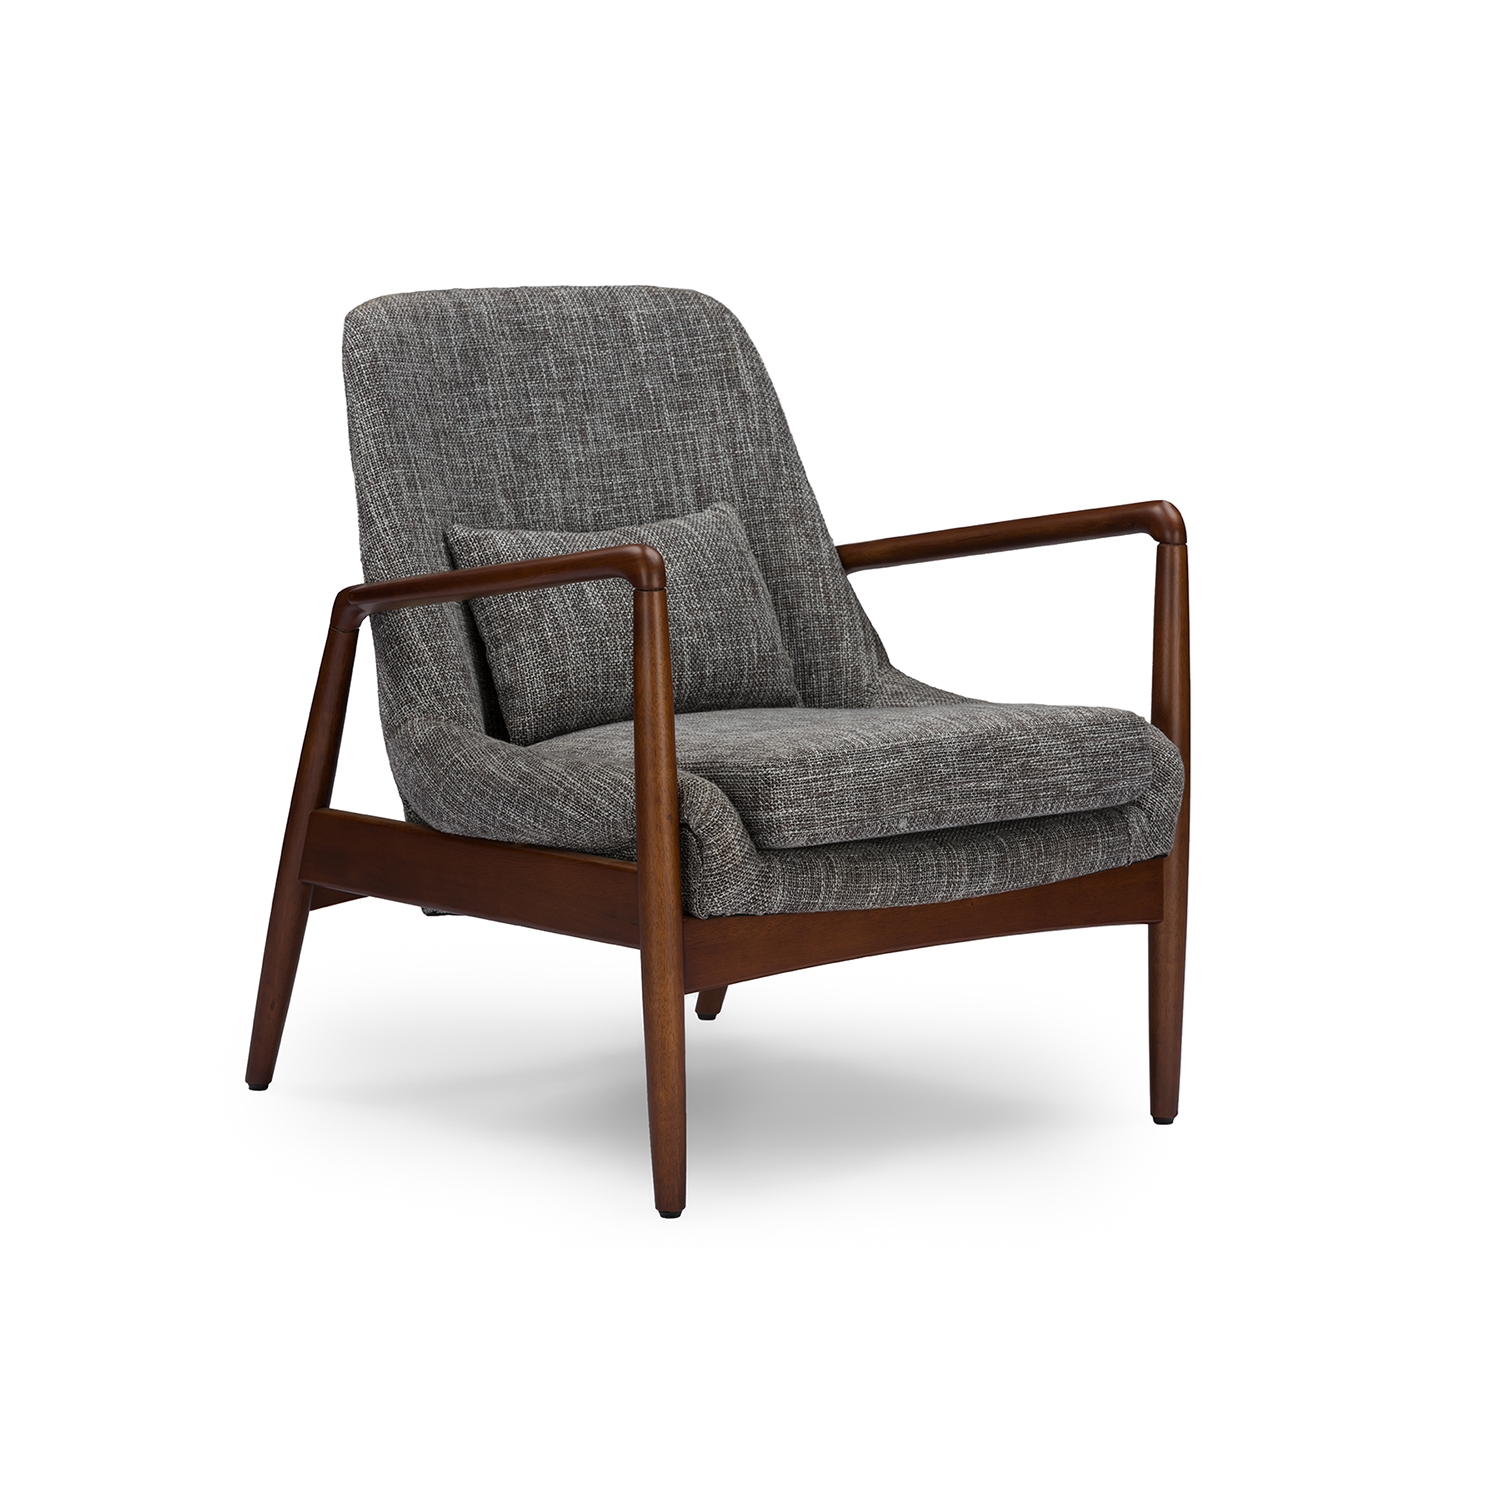 wood frame accent chairs. Baxton Studio Carter Mid-Century Modern Retro Grey Fabric Upholstered Leisure Accent Chair In Walnut Wood Frame Chairs R